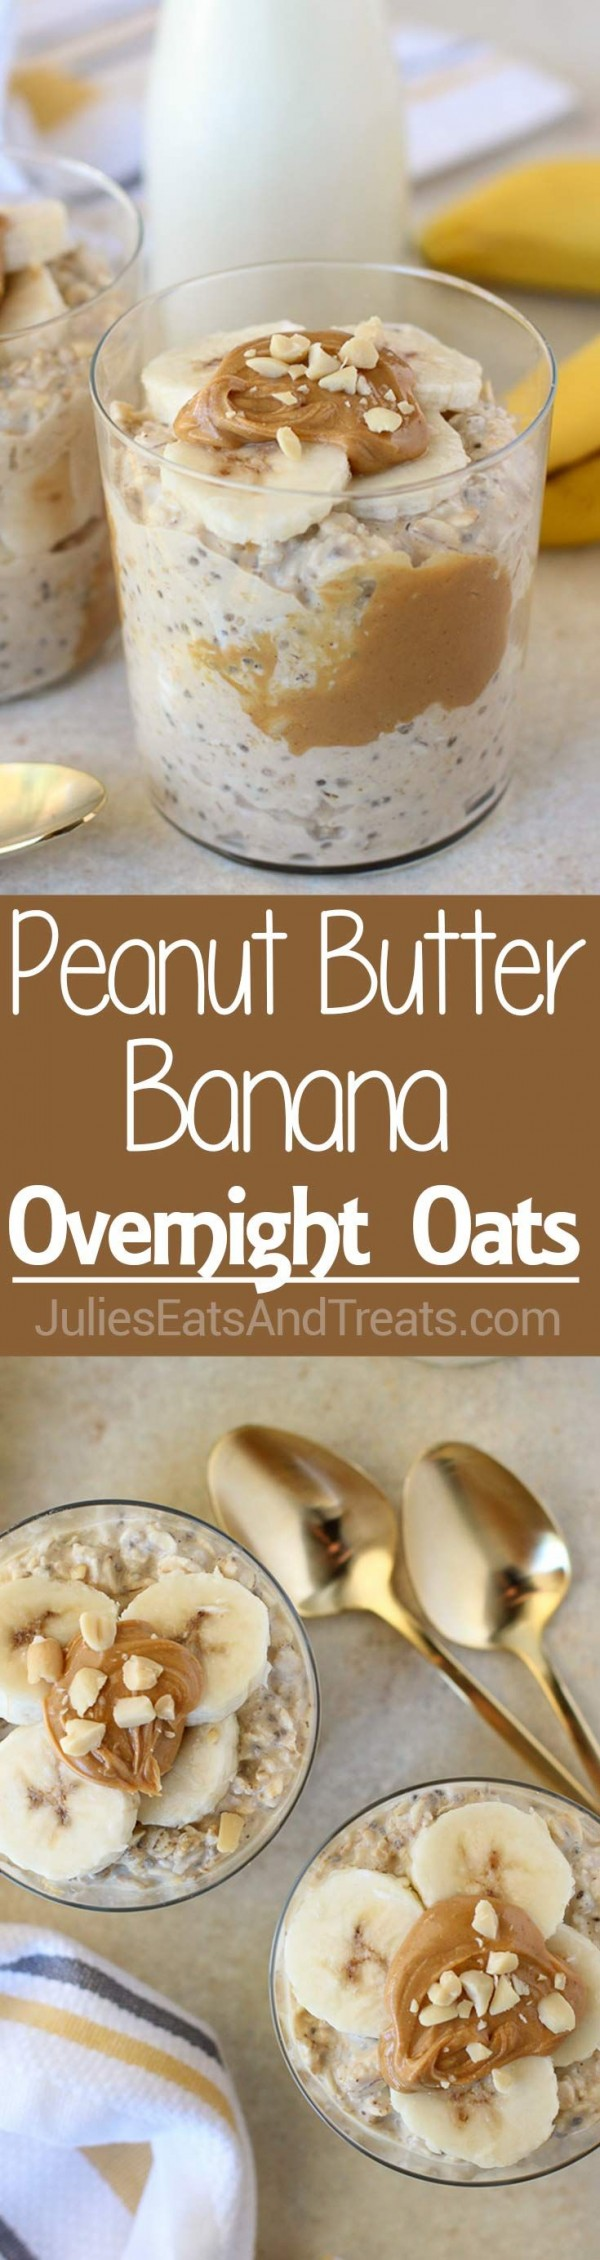 Get the recipe Peanut Butter Banana Ovemight Oats @recipes_to_go